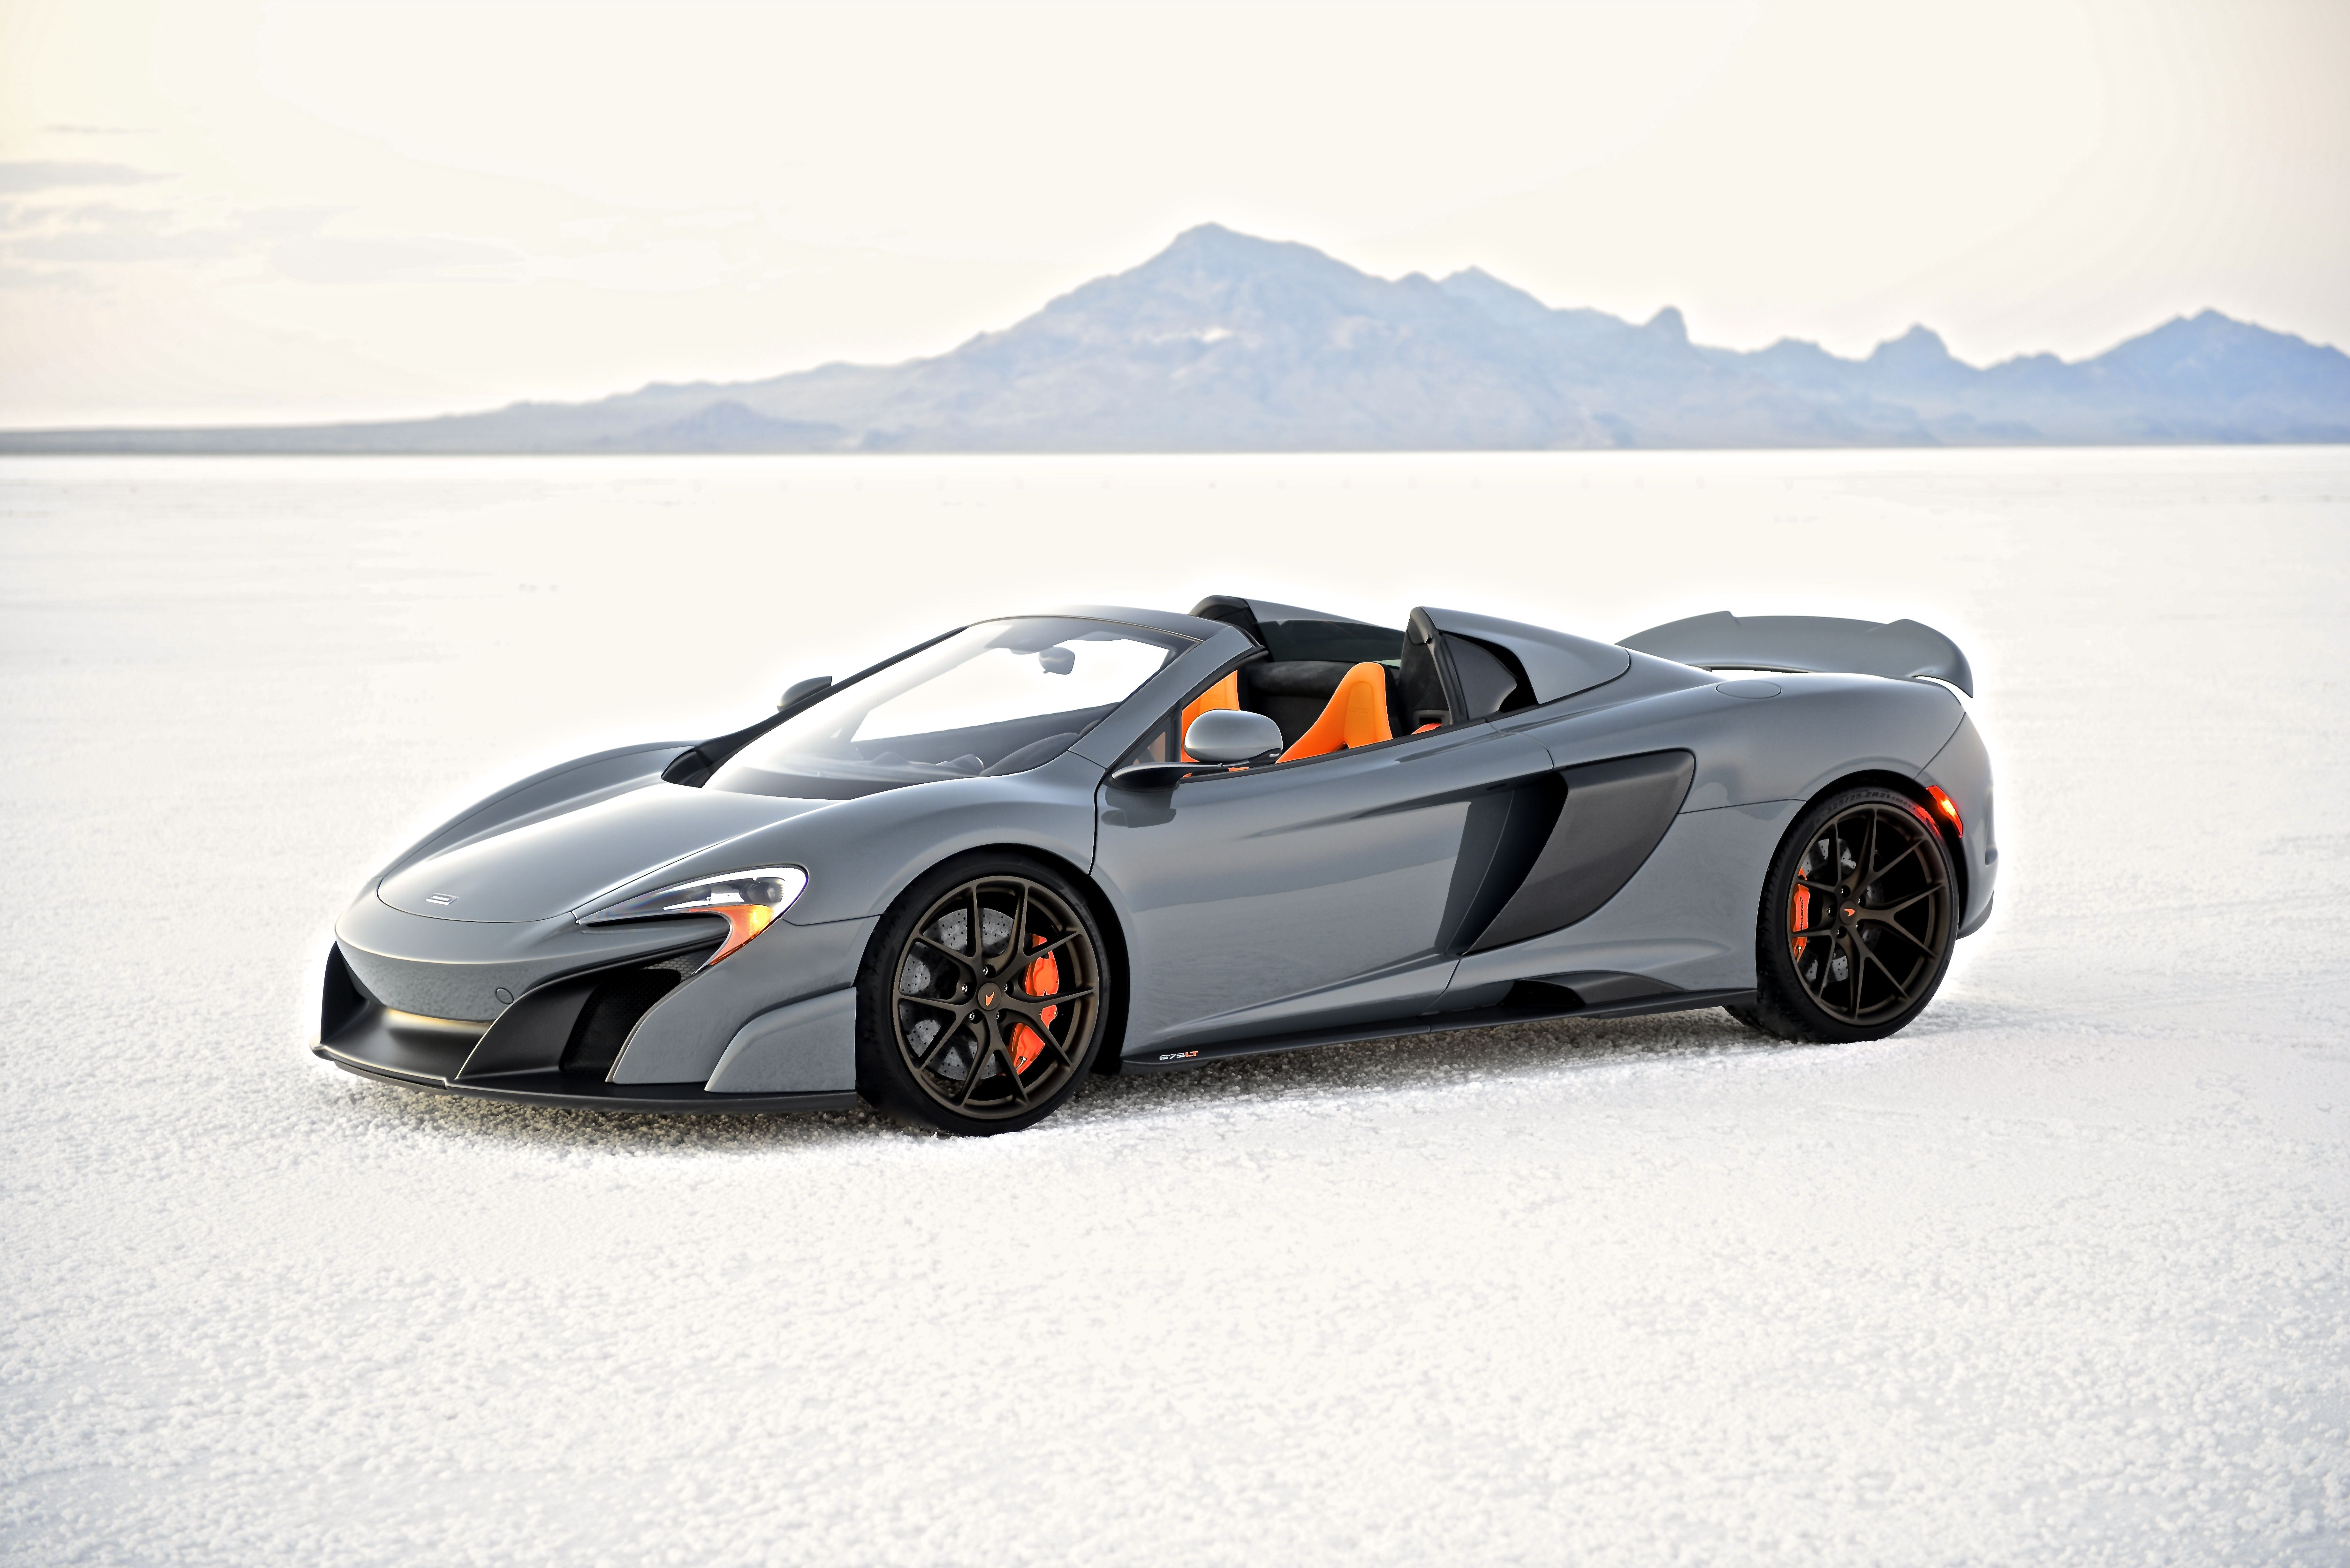 Your Ridiculously Awesome Mclaren 675lt Spider Wallpaper Is Here